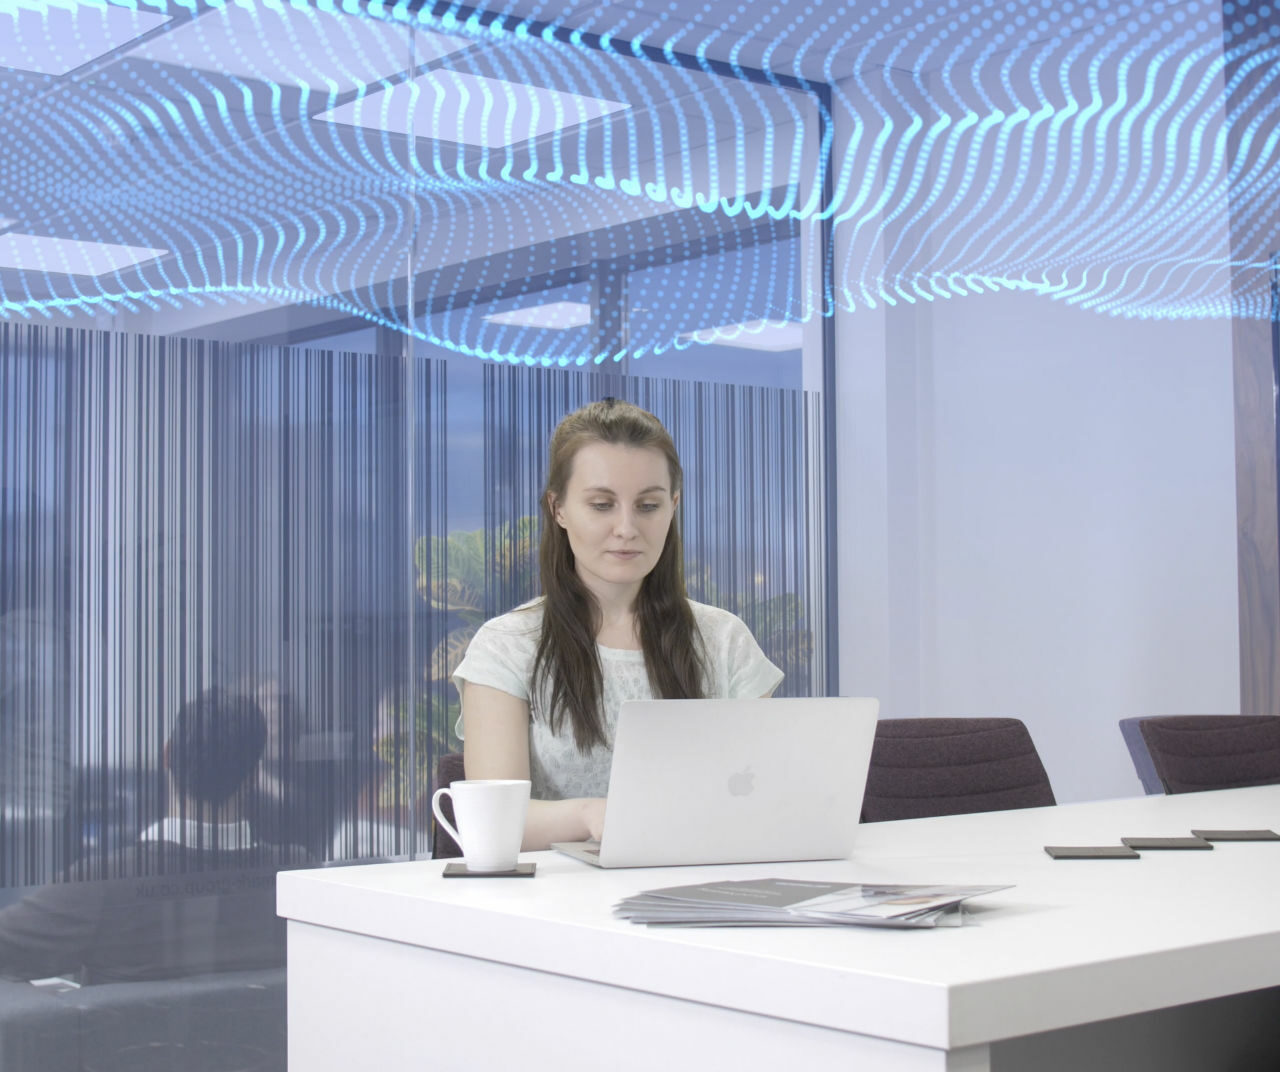 Poor acoustic design has negative impact on workers wellbeing and productivity – says survey